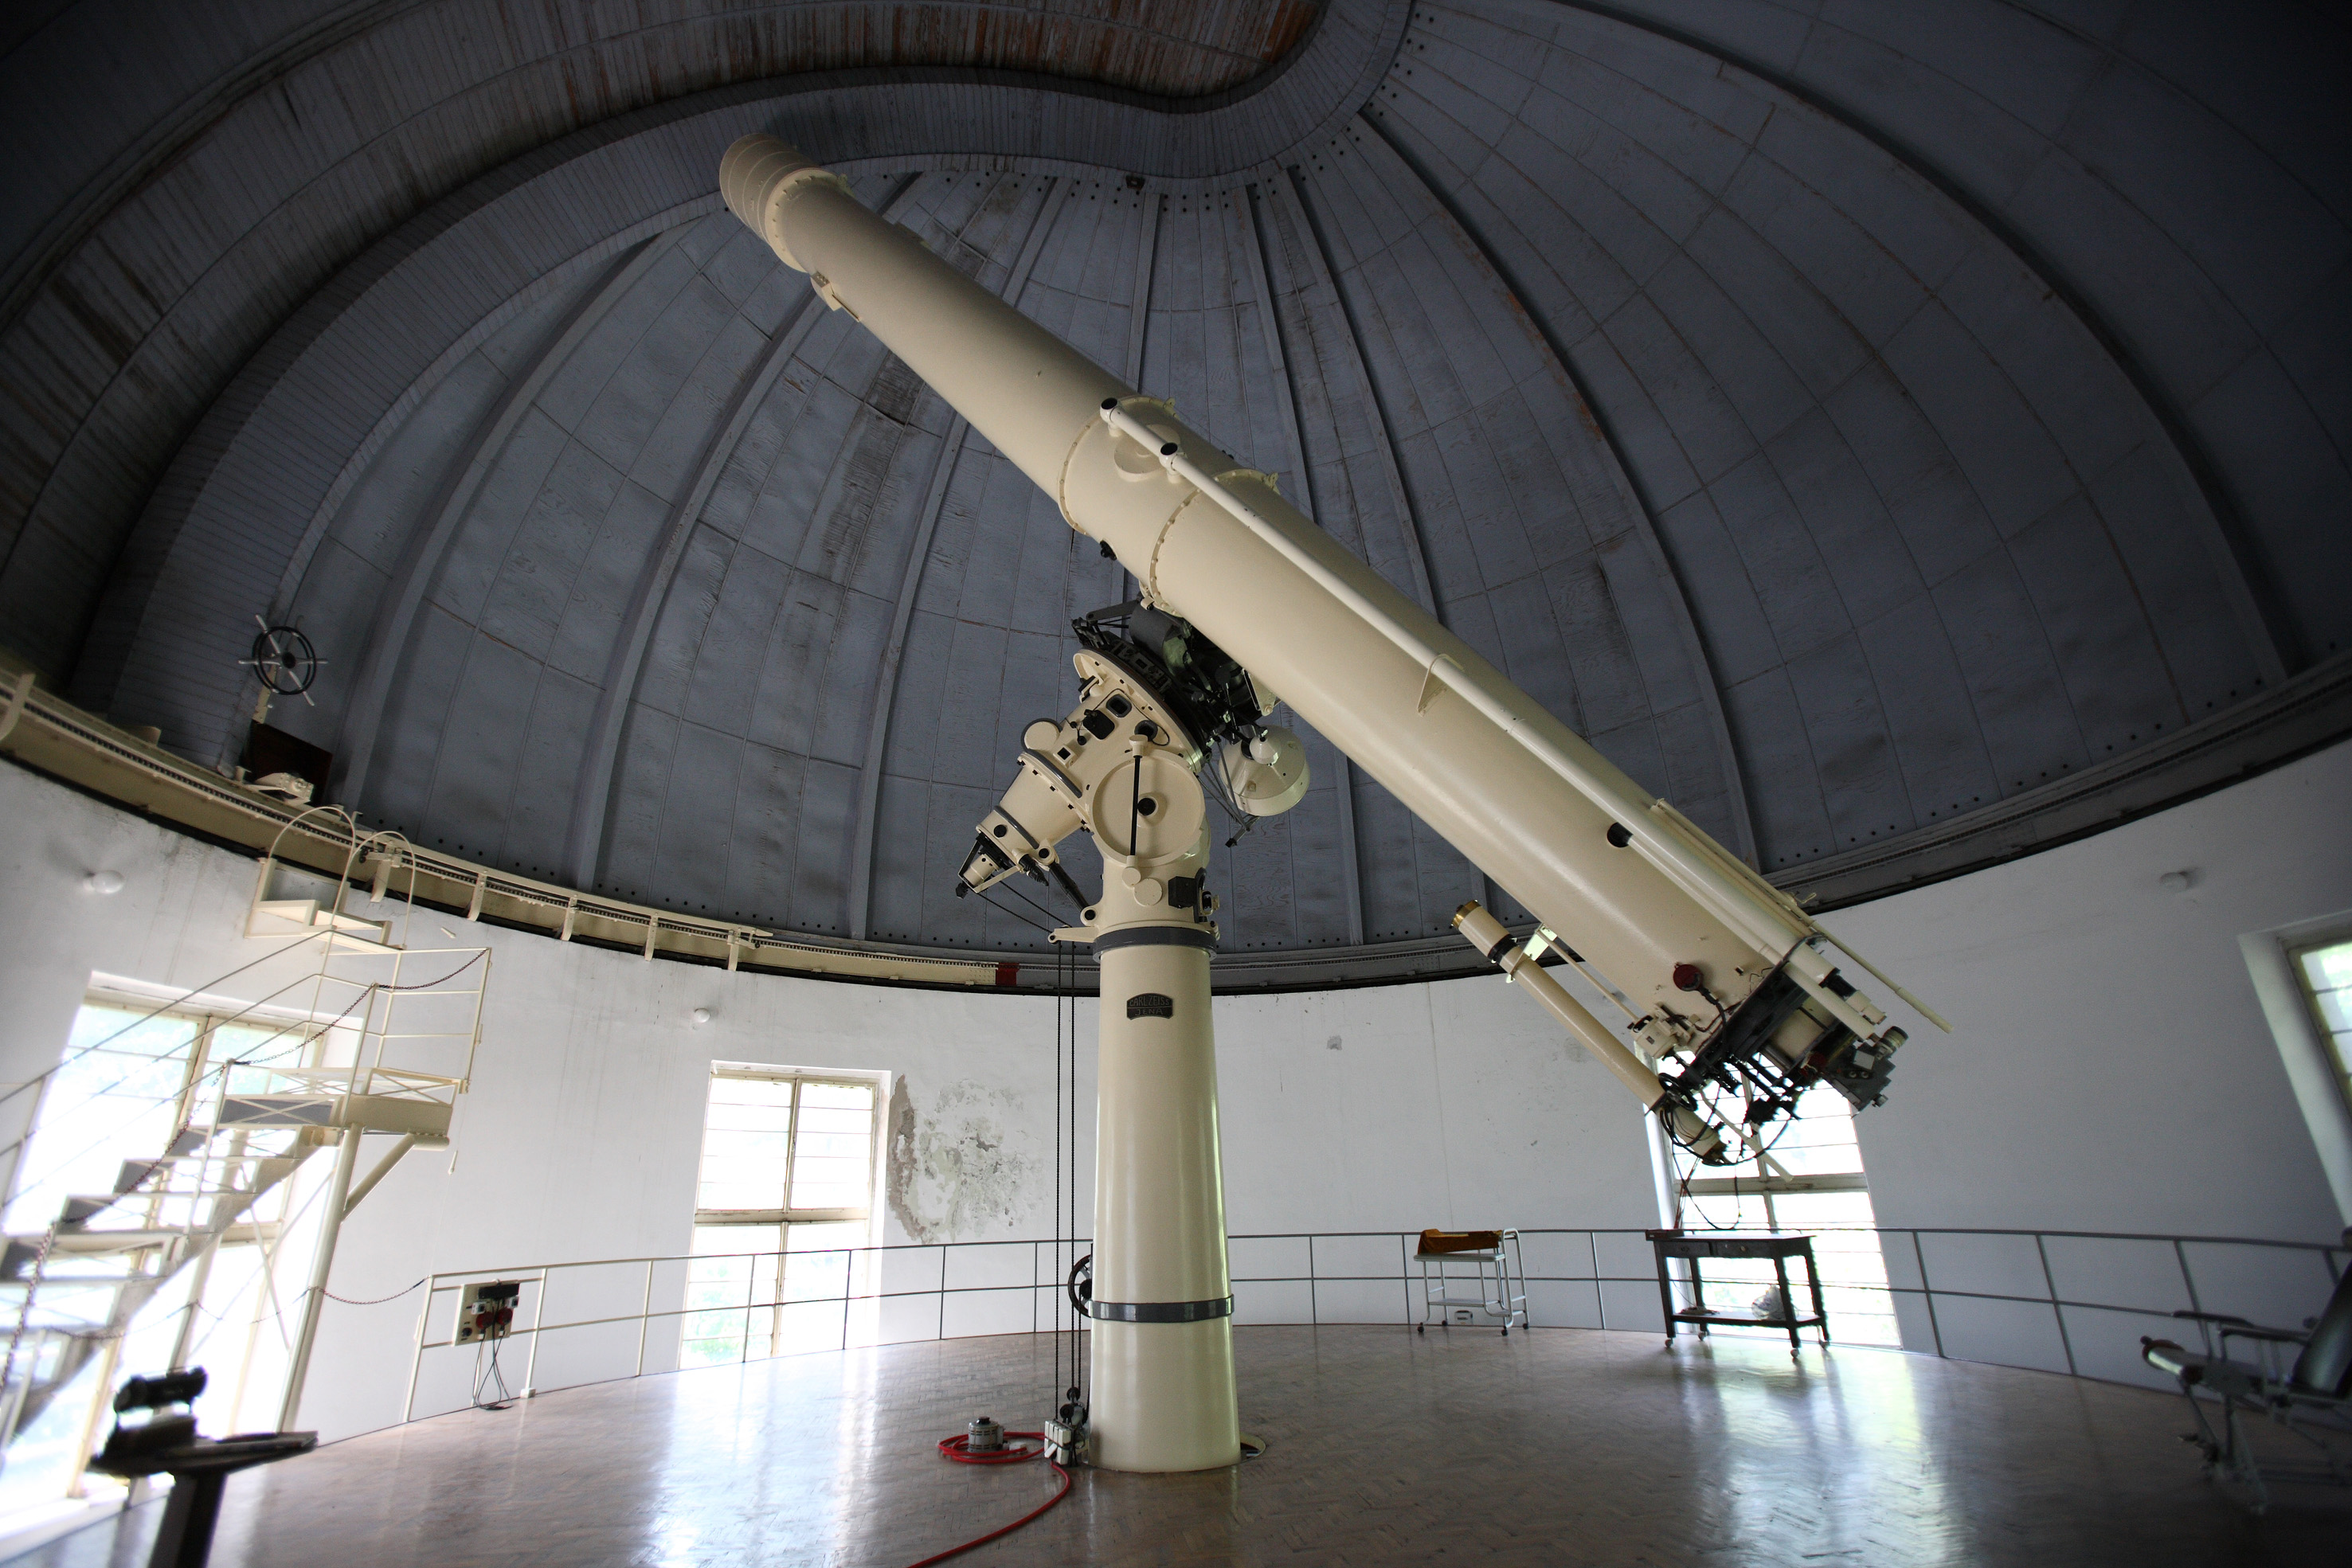 Belgrade Astronomical Observatory